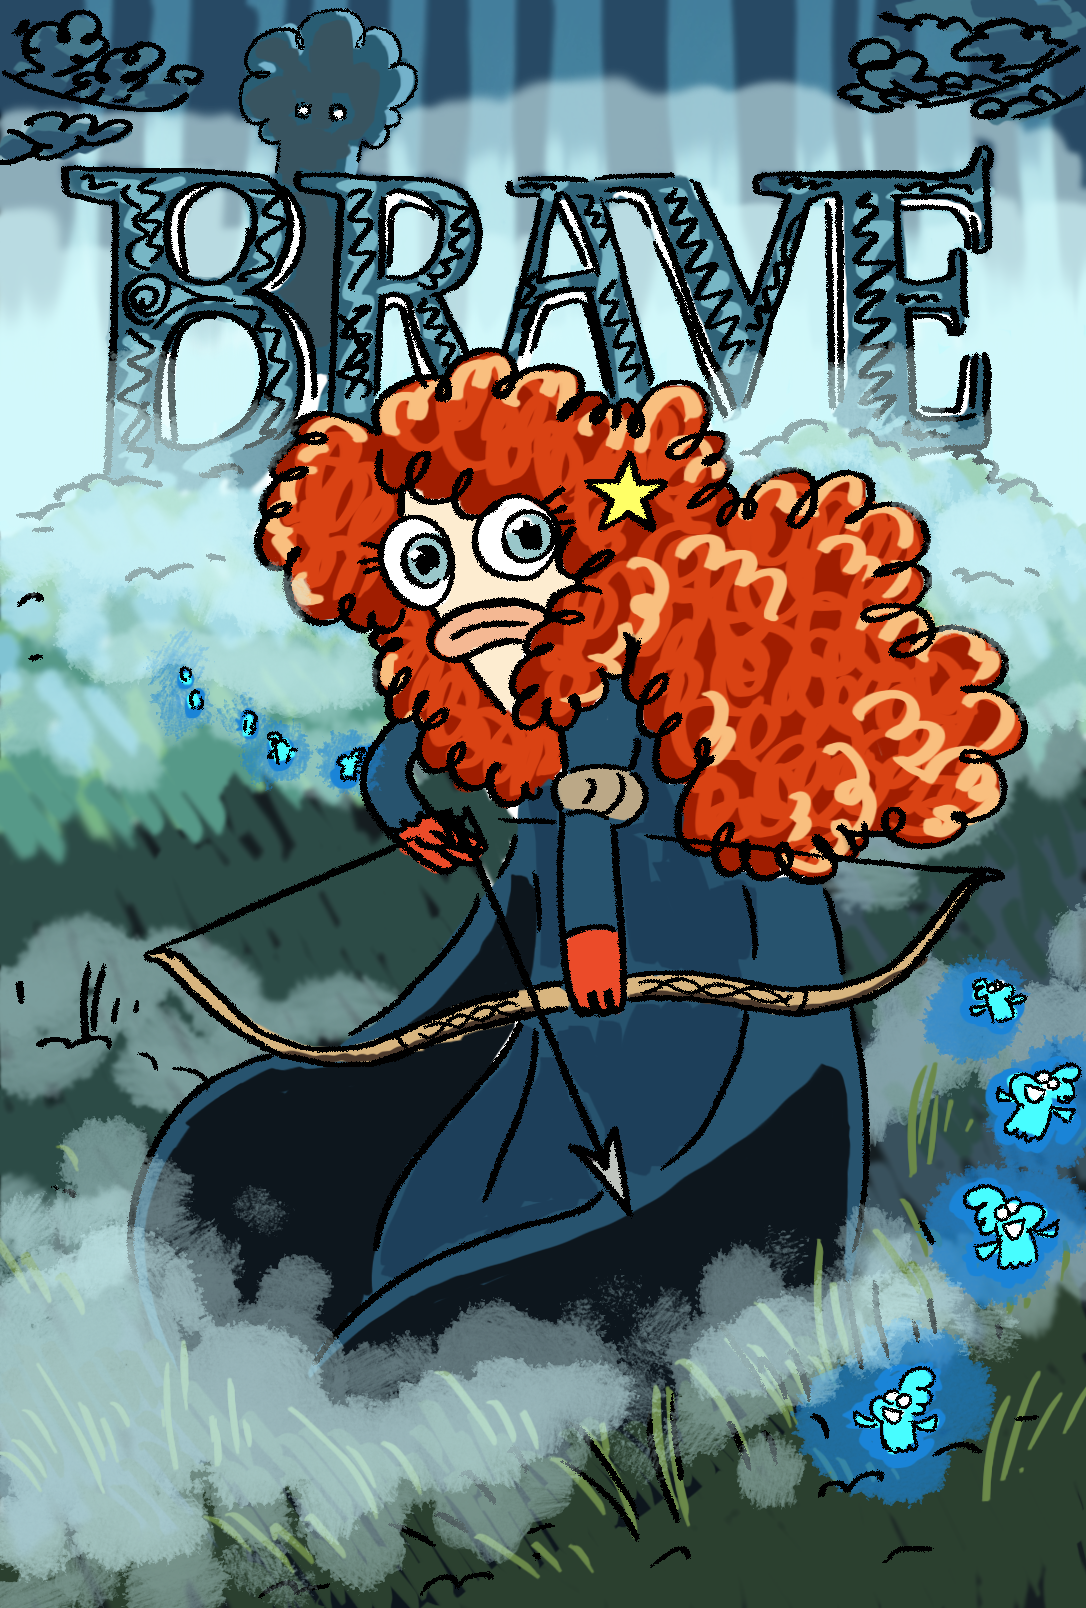 Bea Brave and decide your own fate!